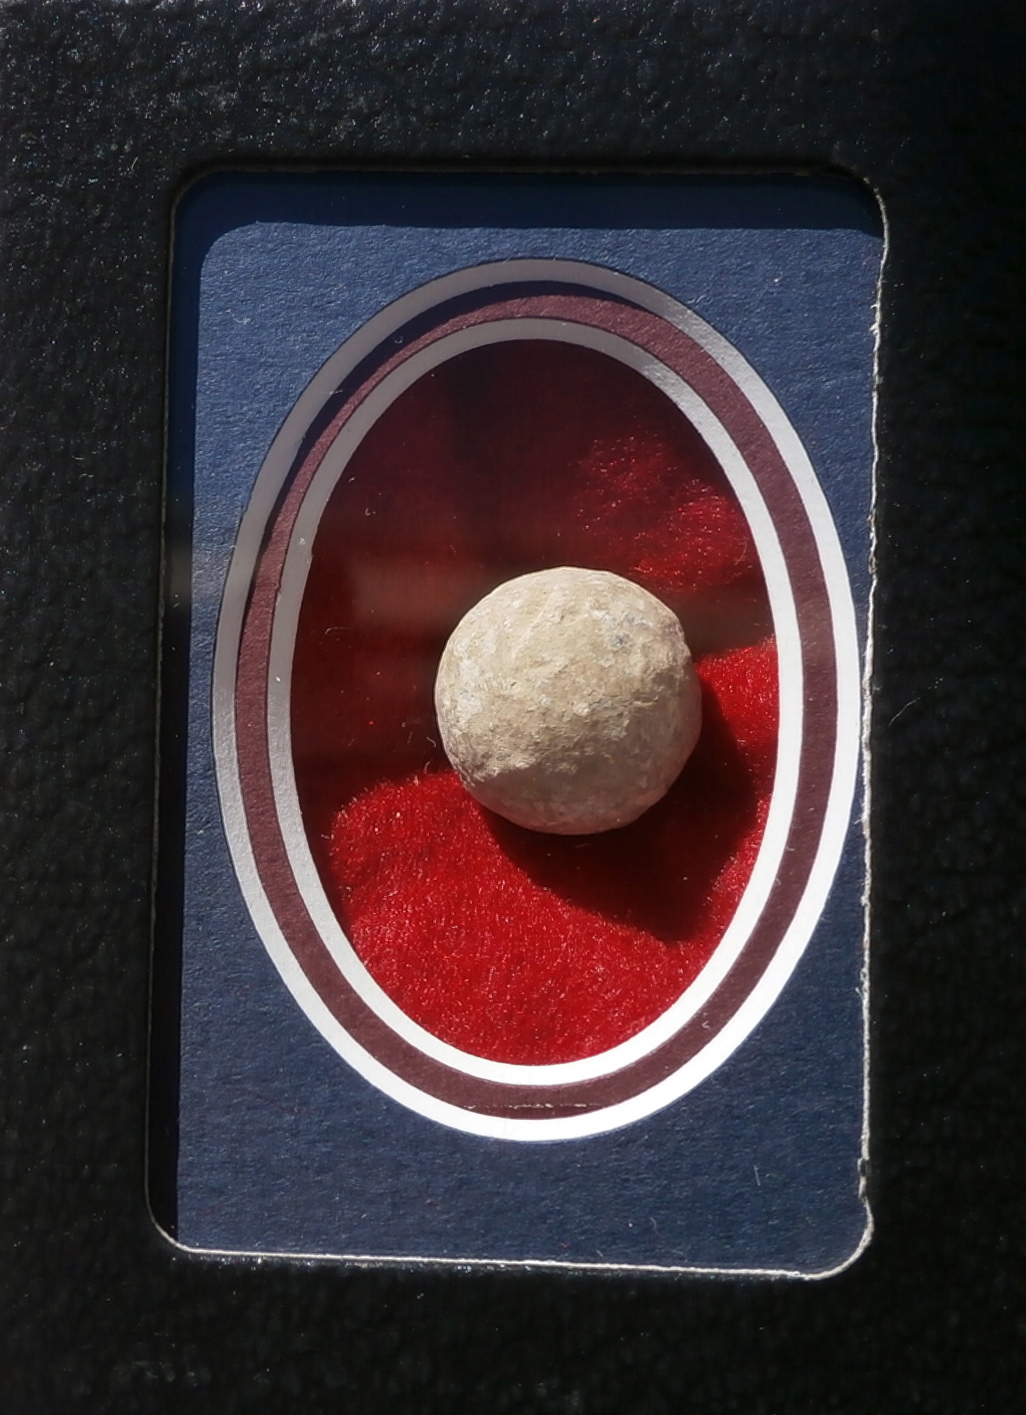 .69 confederate musket ball round top